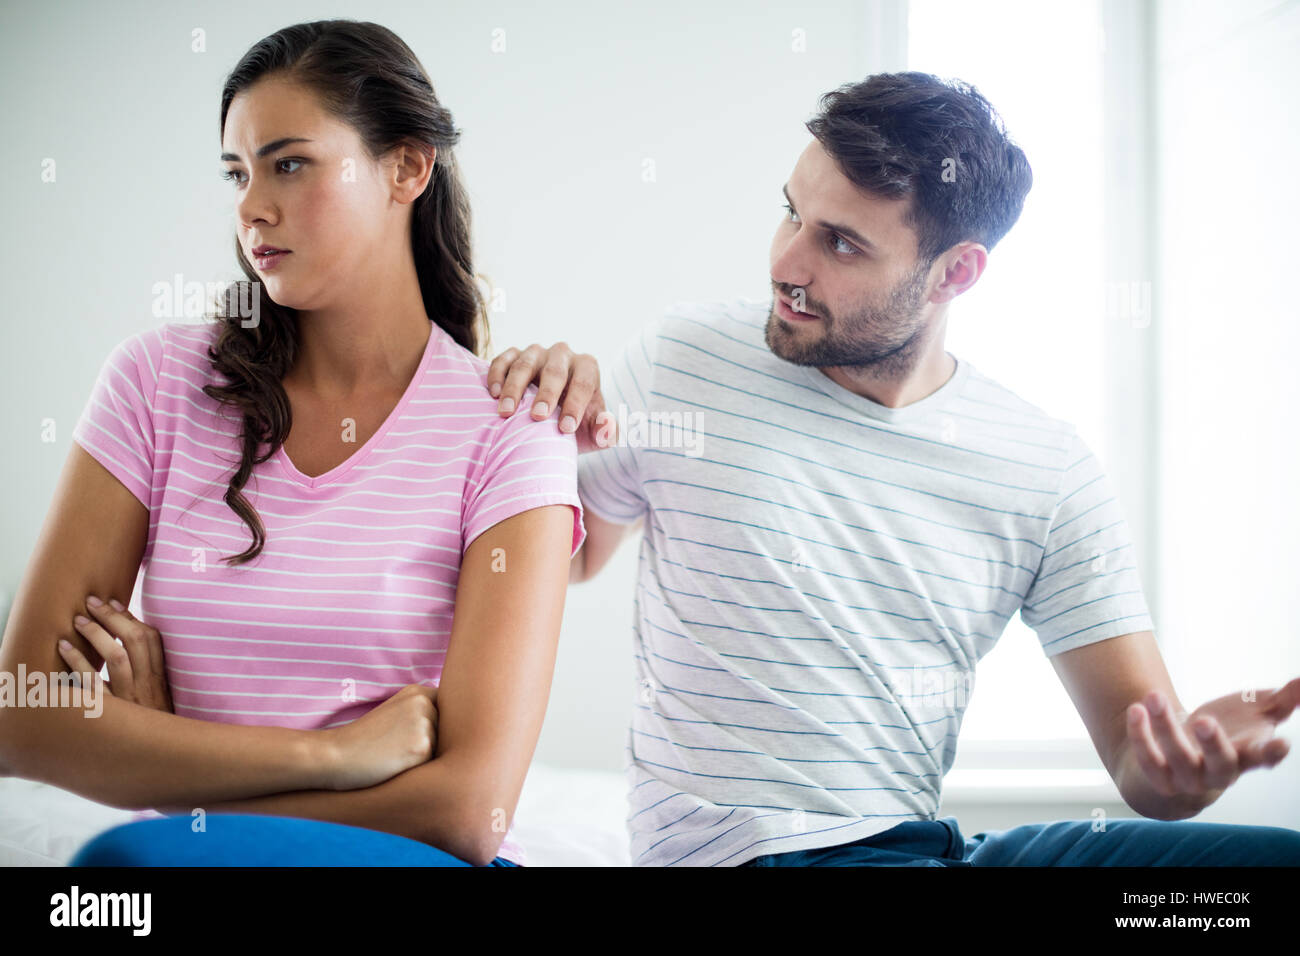 Couple arguing with each other in bedroom at home - Stock Image